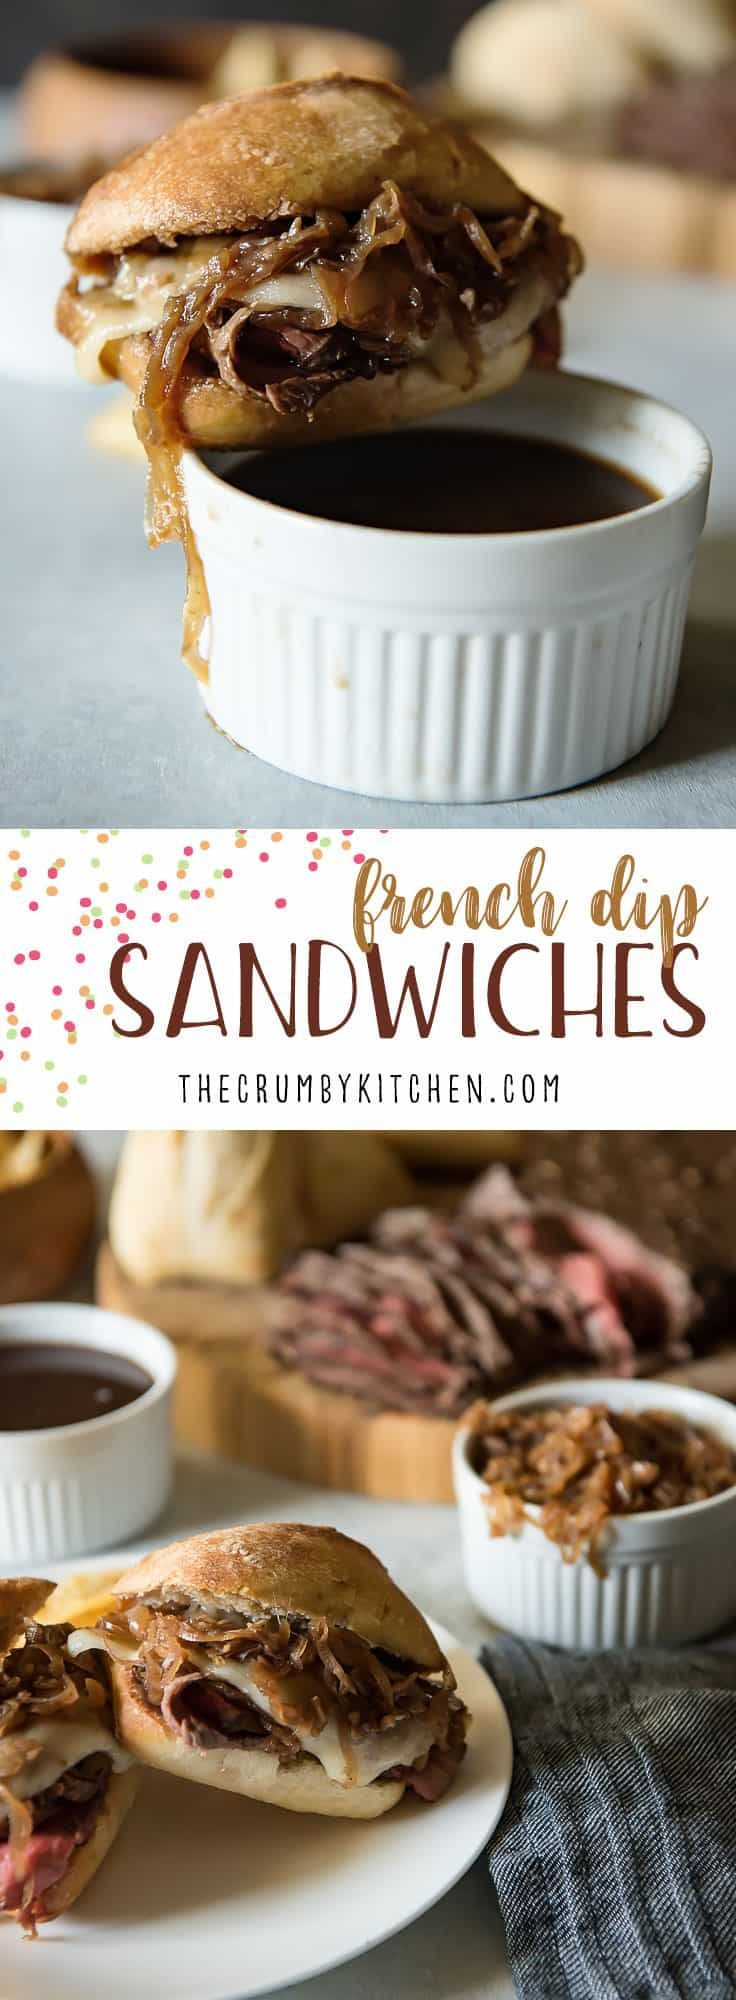 Tender & juicy London broil is the star of these French Dip Sandwiches with Caramelized Onion Au Jus, but slices from leftover holiday roasts would be equally delicious! #leftover #roastbeef #frenchdip #sandwich #aujus #gravy #caramelizedonion #londonbroil